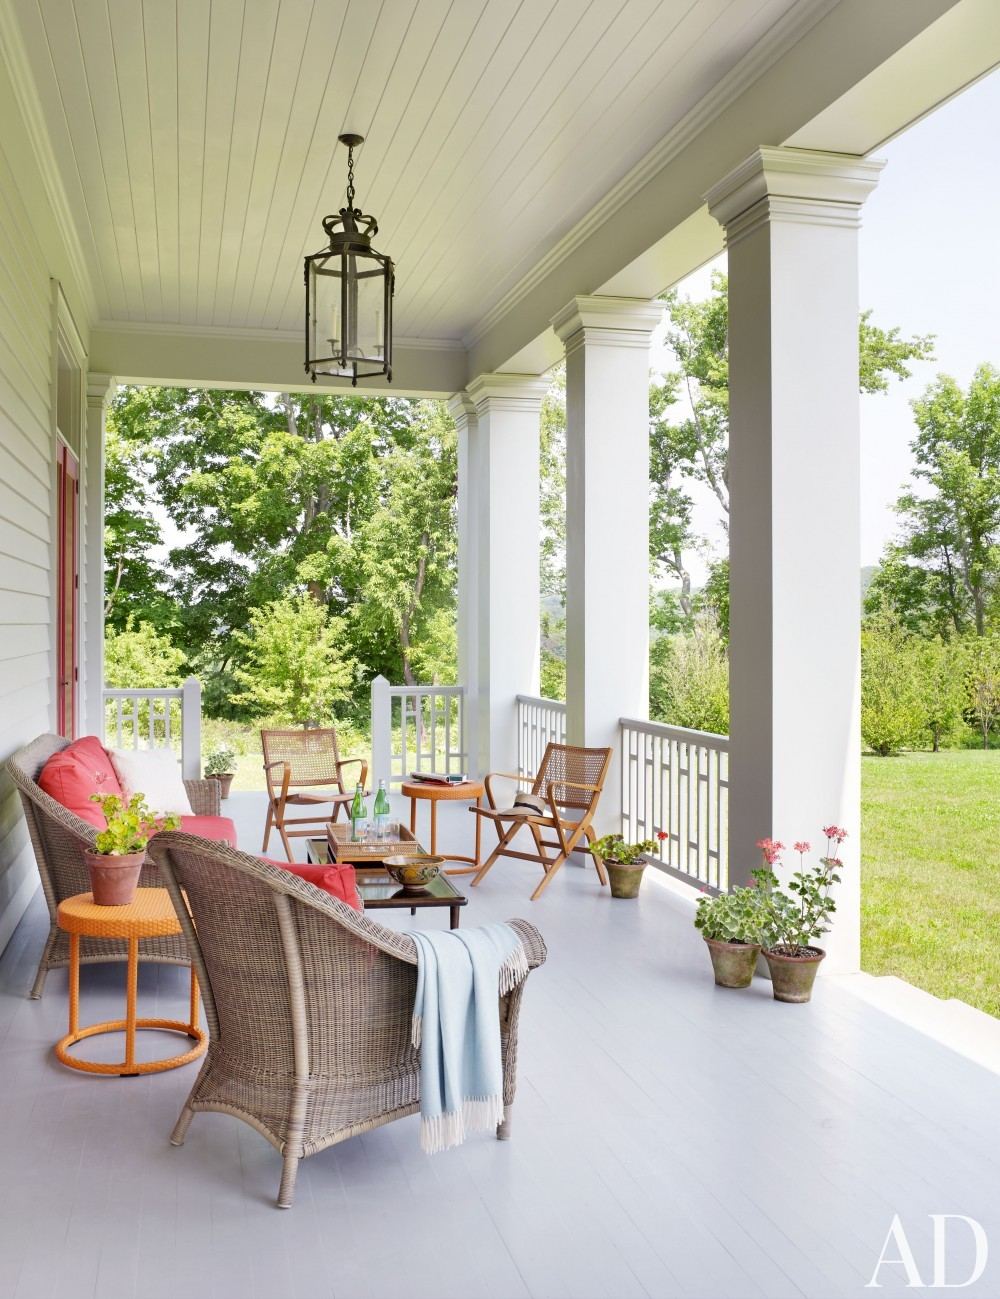 Traditional Outdoor Living by Katie Ridder and Peter Pennoyer in Millbrook, NY